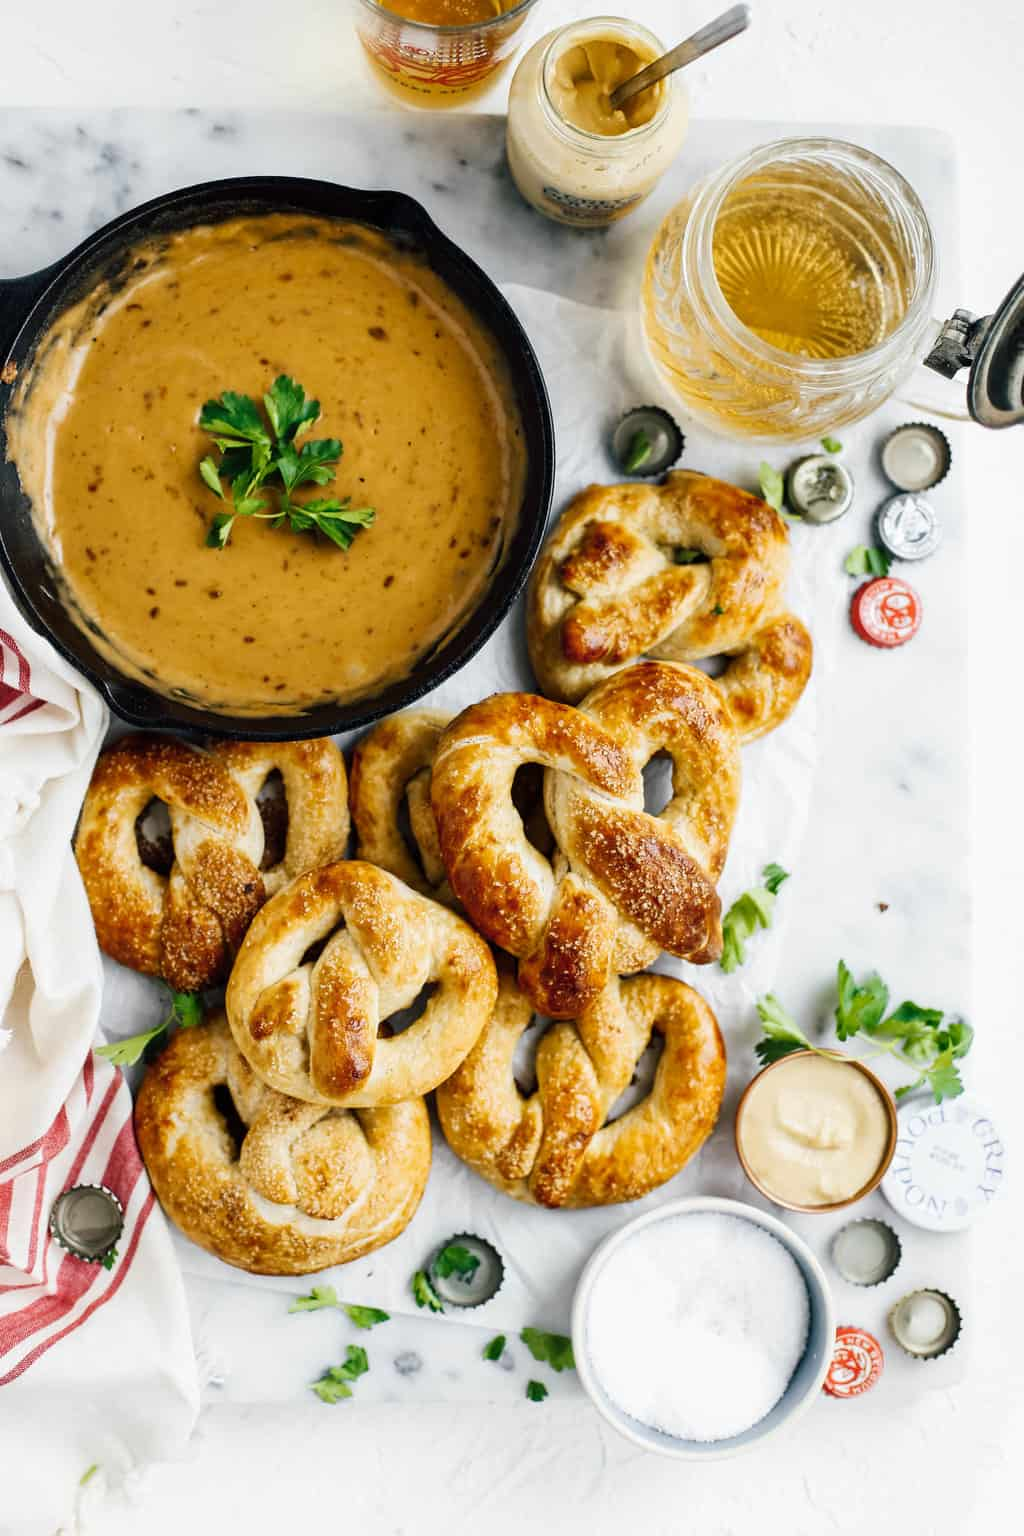 easy homemade soft pretzels with beer cheese dip in cast iron skillet